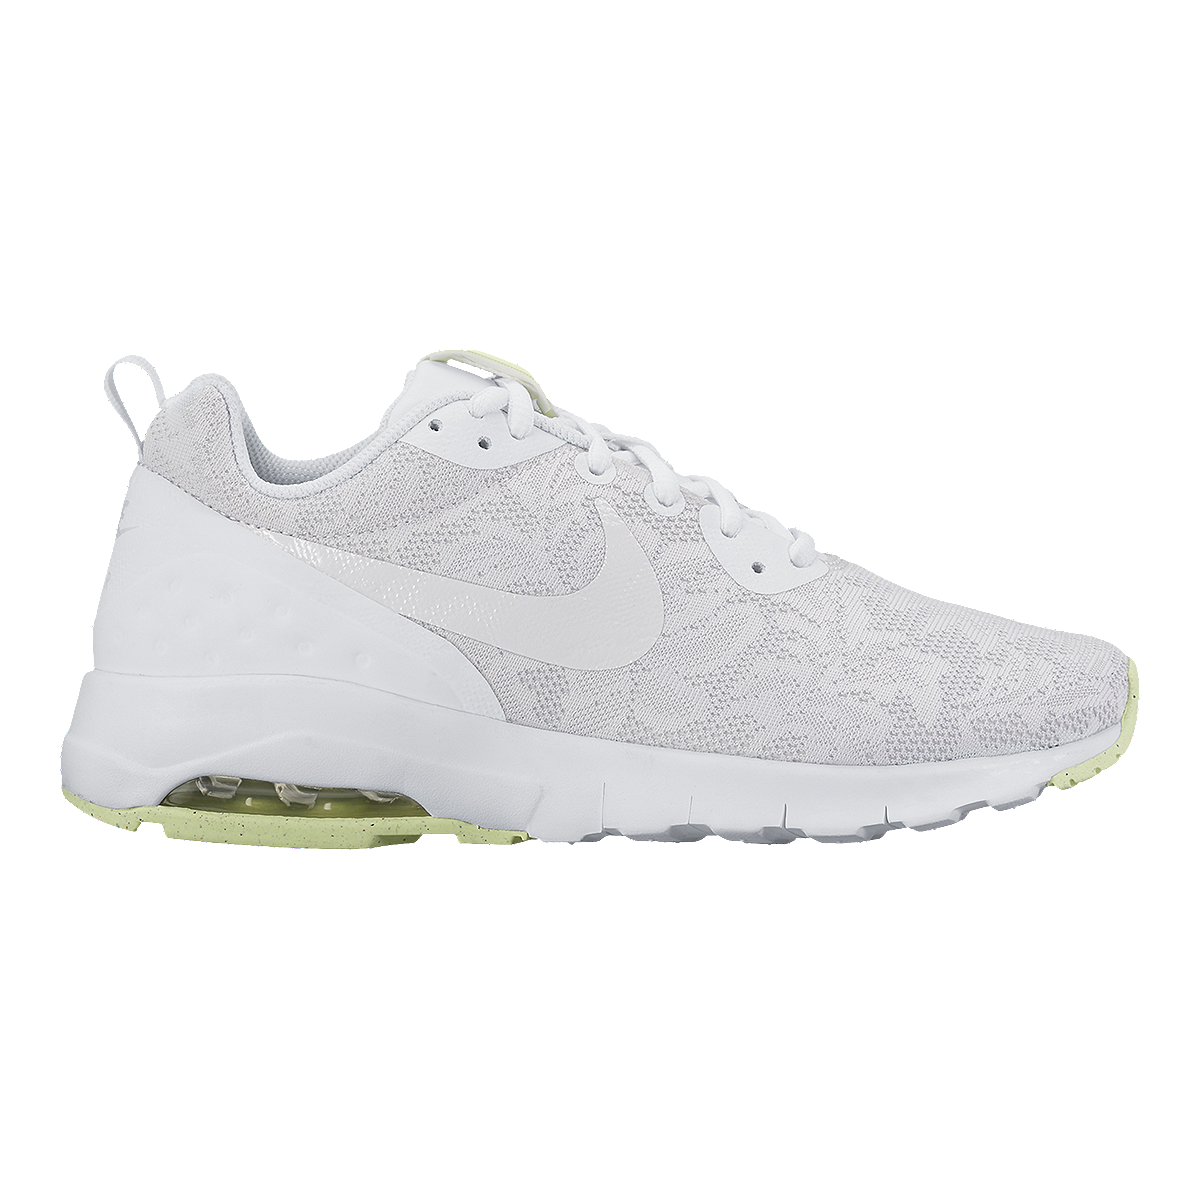 54c3432f79 Nike Women's Air Max Motion Low ENG Shoes - White | Sport Chek